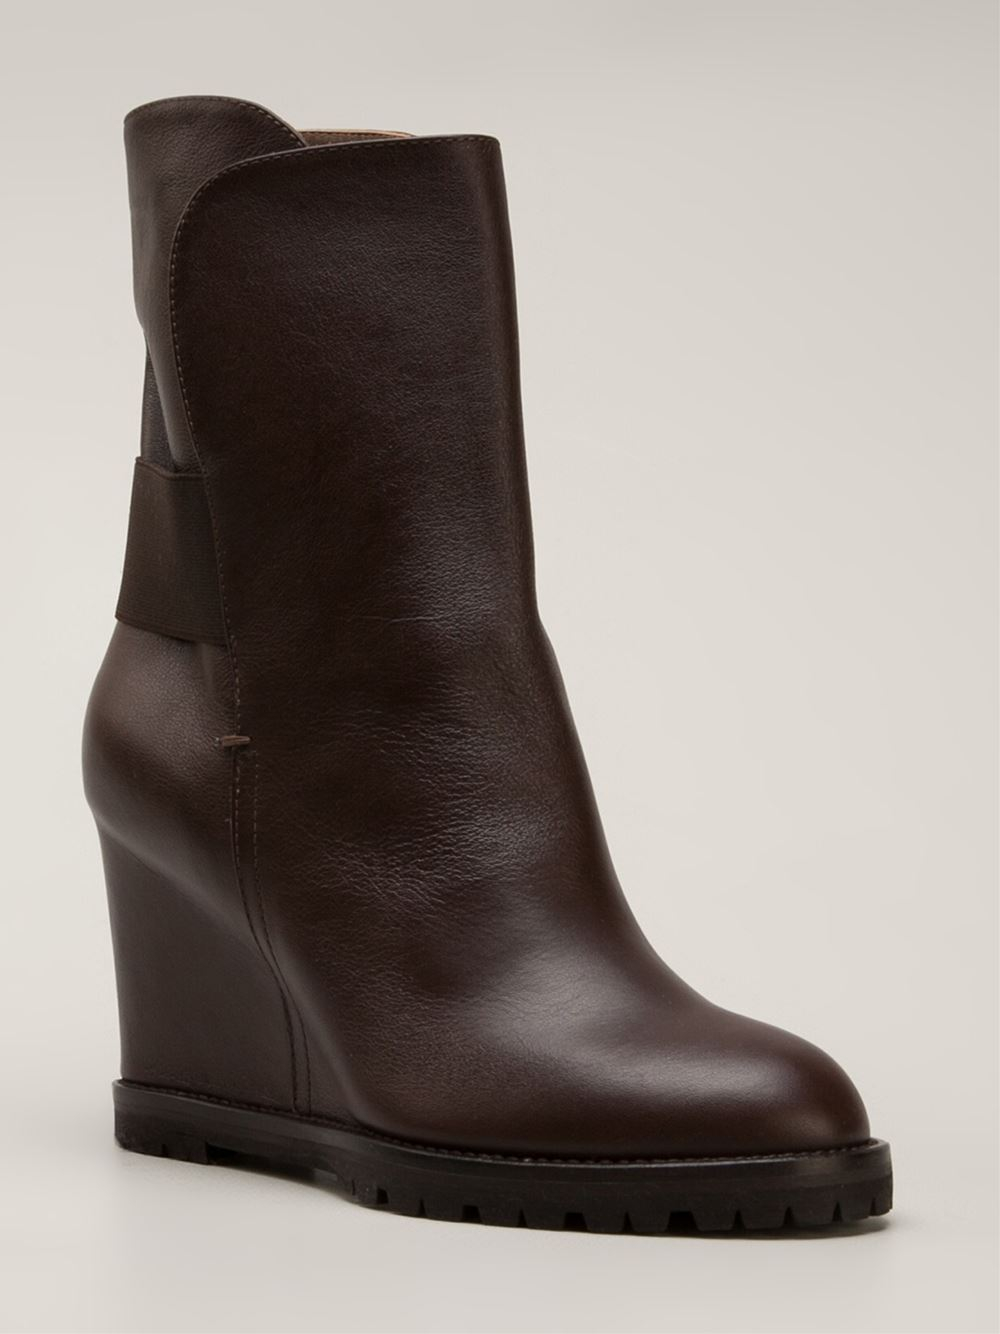 chuckies new york wedge boots in brown lyst